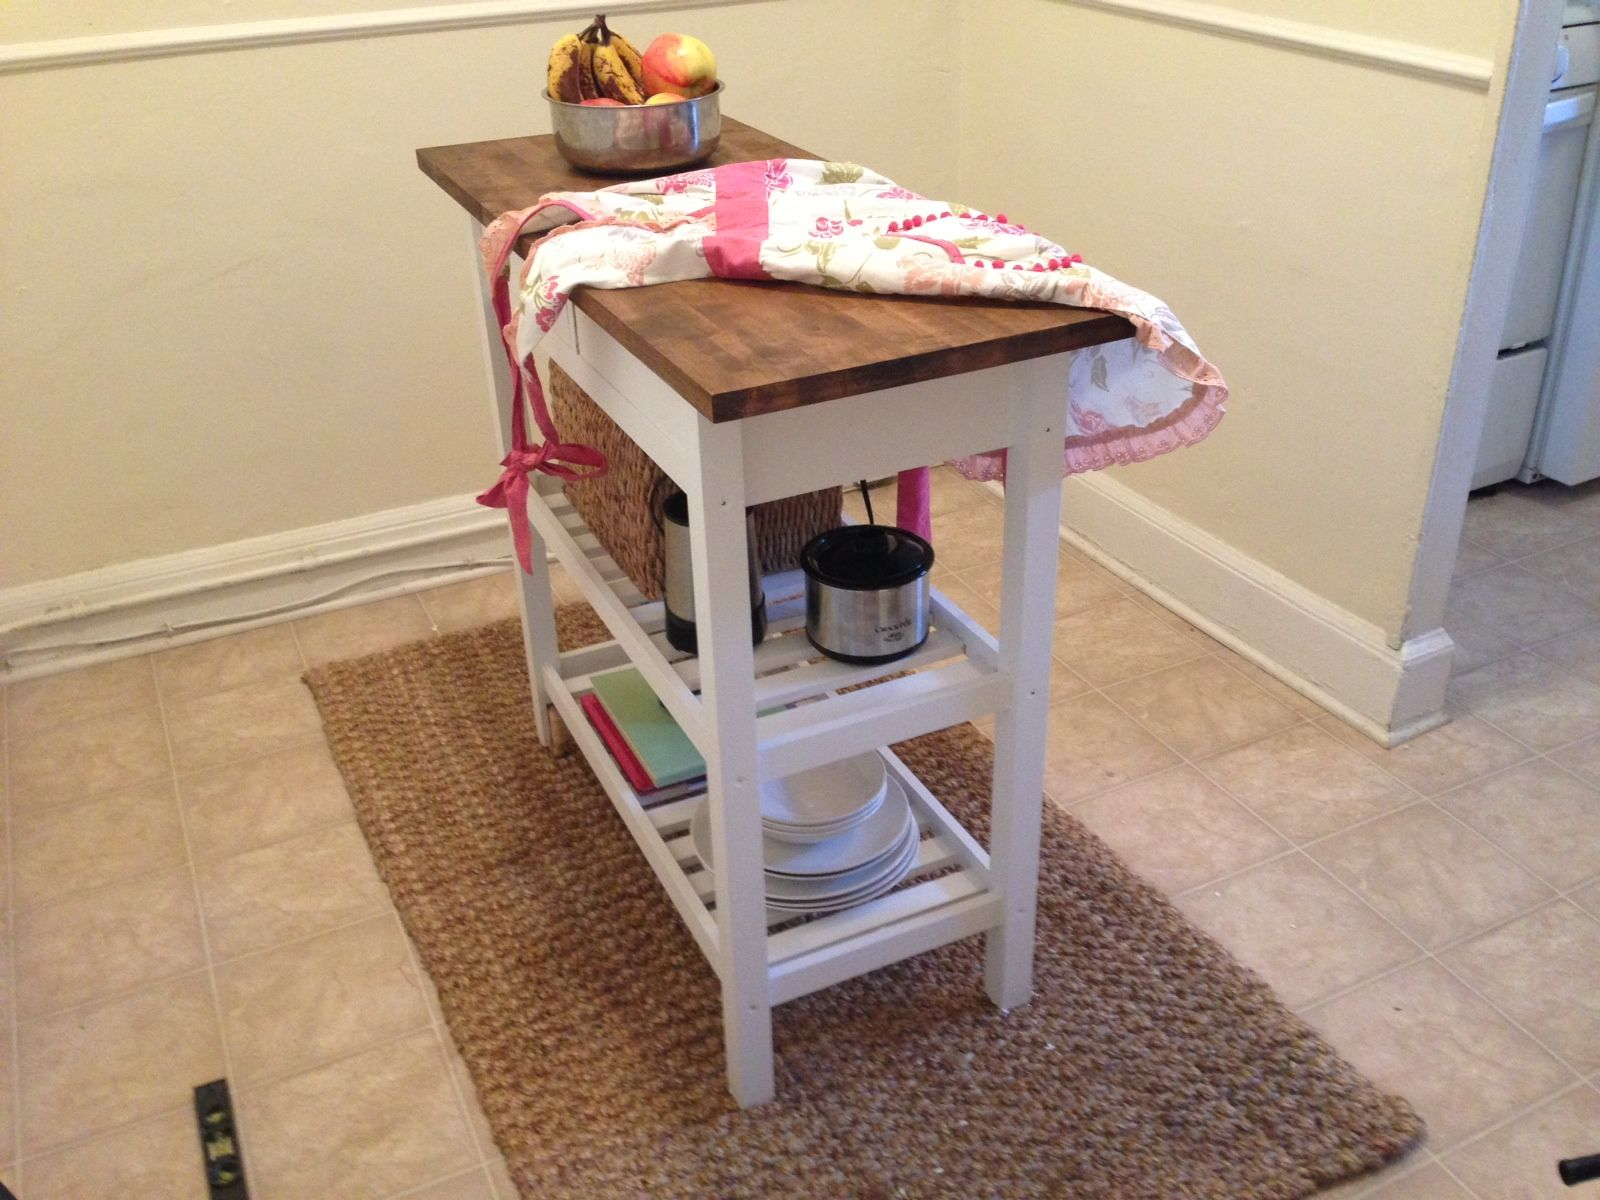 Ikea kitchen cart painted - Lately The Murphy Household Has Been Conquering Some Big Projects And The Fun Little Diy Endeavors Ikea Trolleykitchen